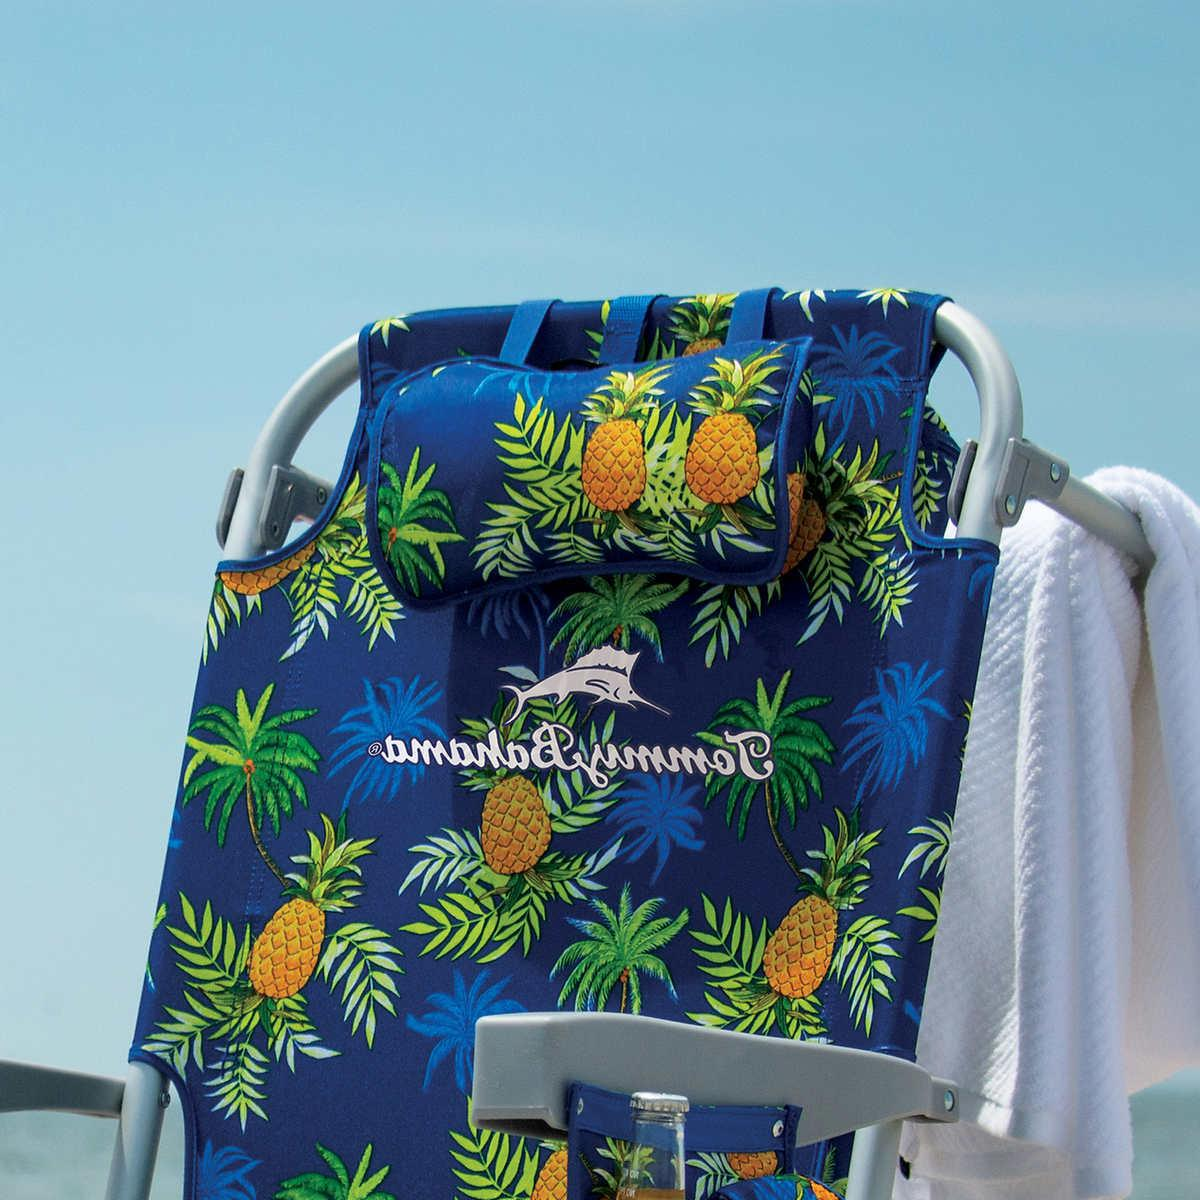 Tommy Bahama 5 Position Beach Chair 2020 with Pineapple NEW!